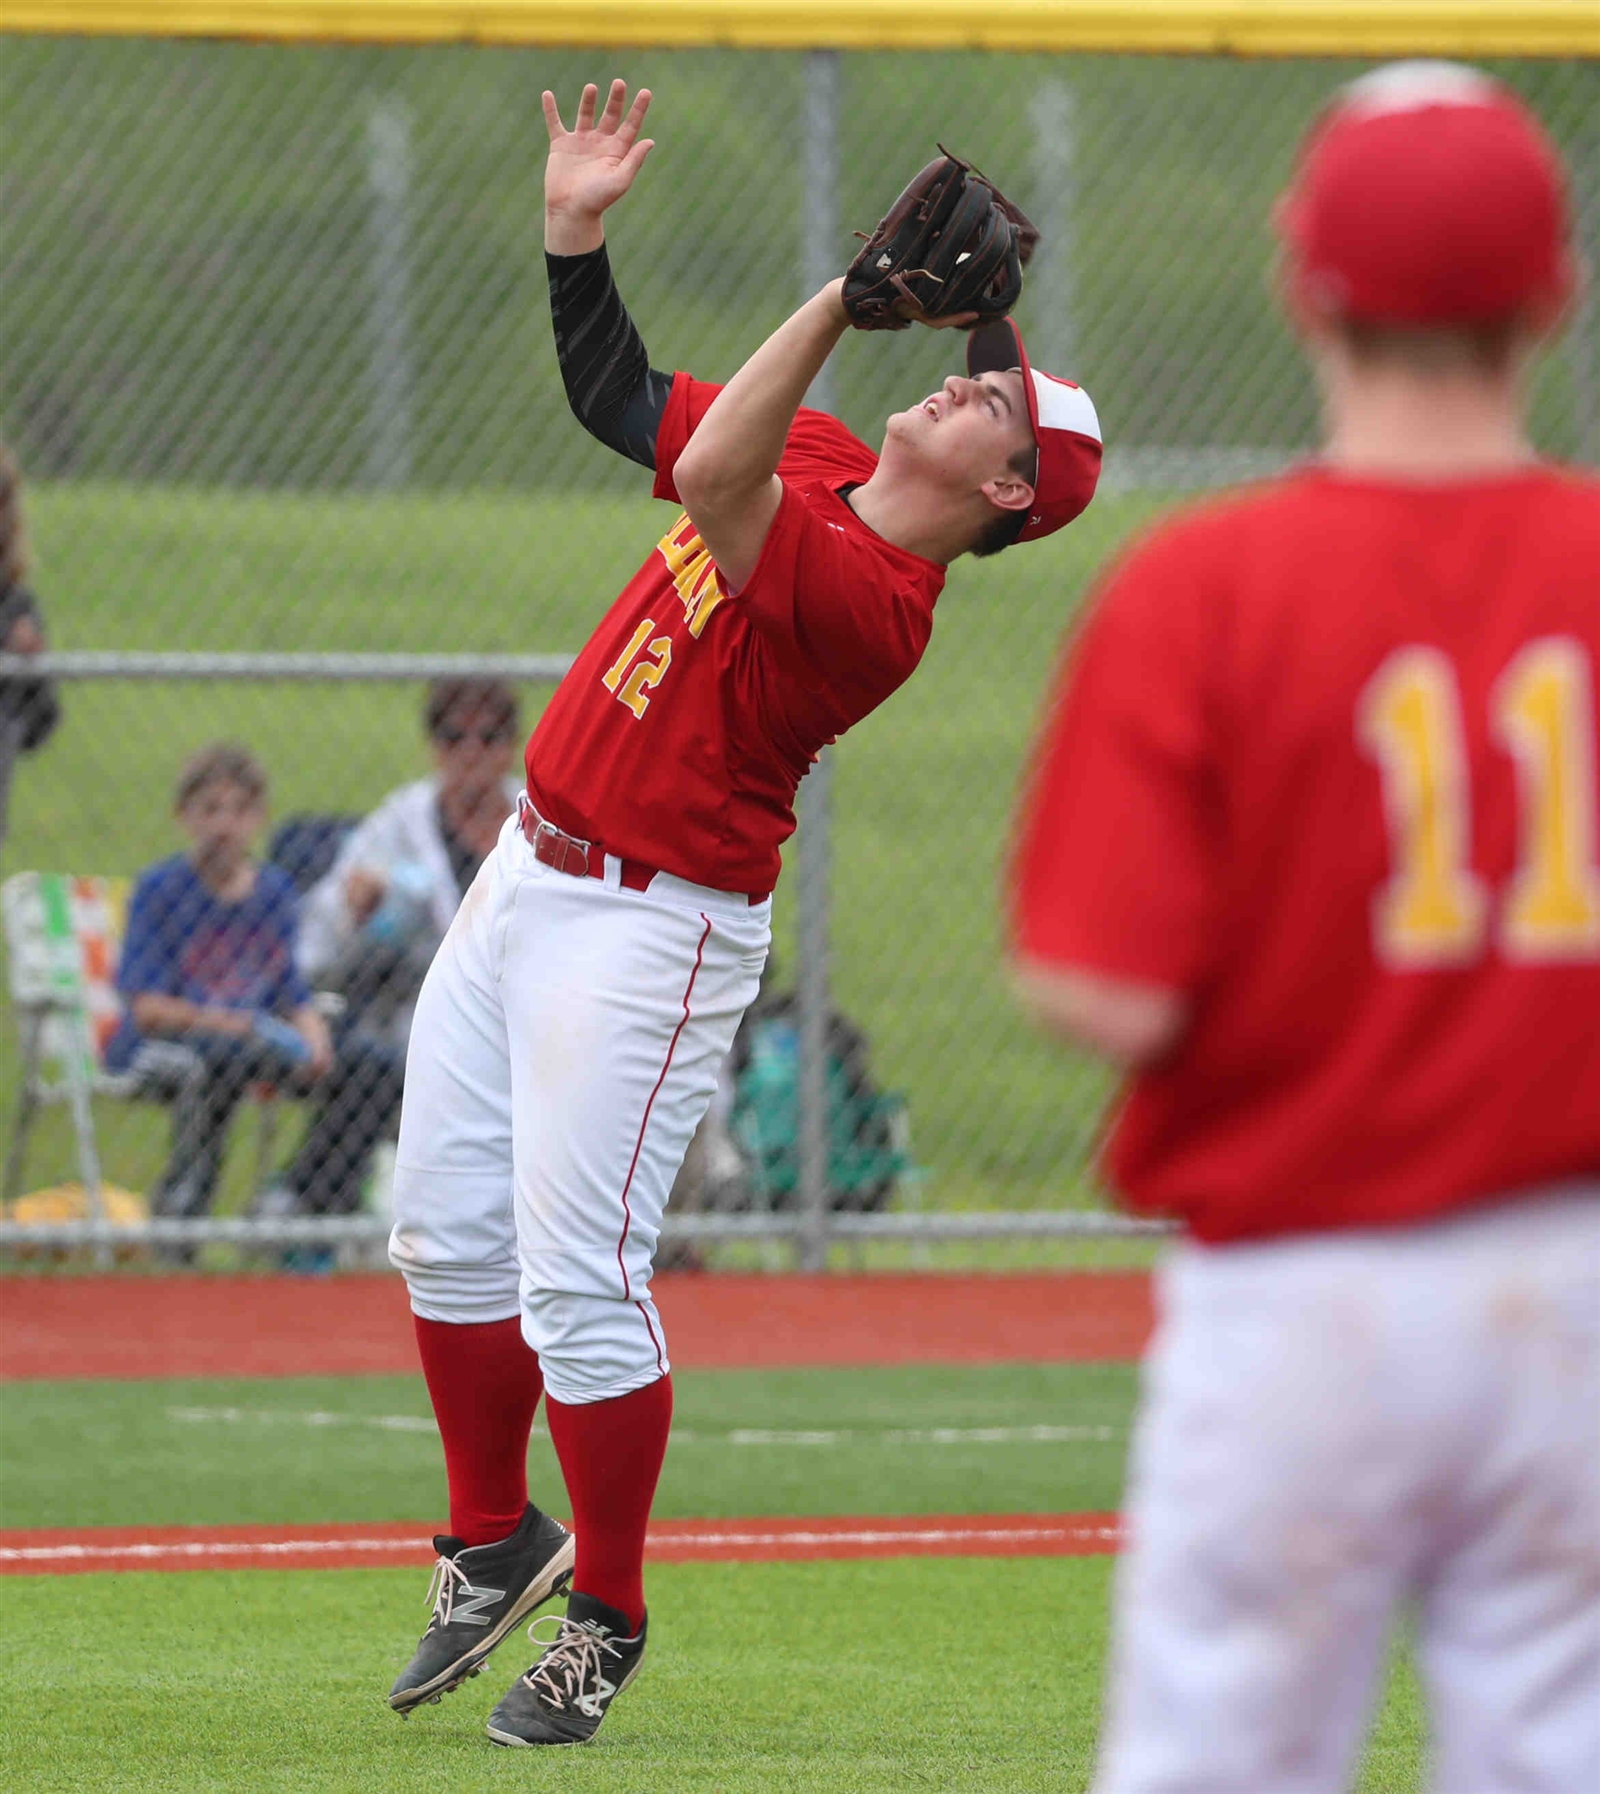 Olean's third baseman Zach Parr catches a pop up in the infield in the second inning.